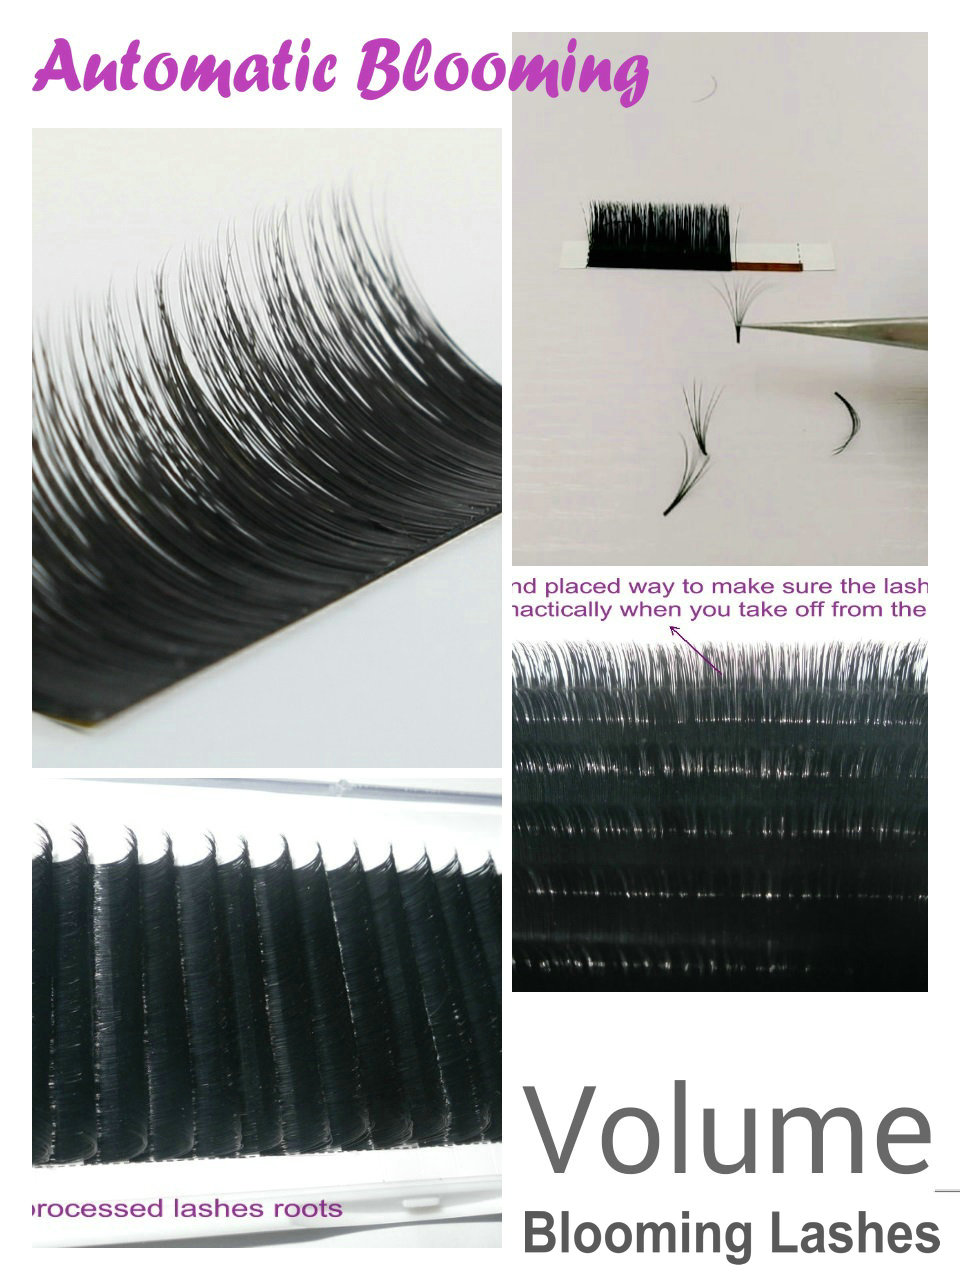 Blooming lashes(easy fanning)